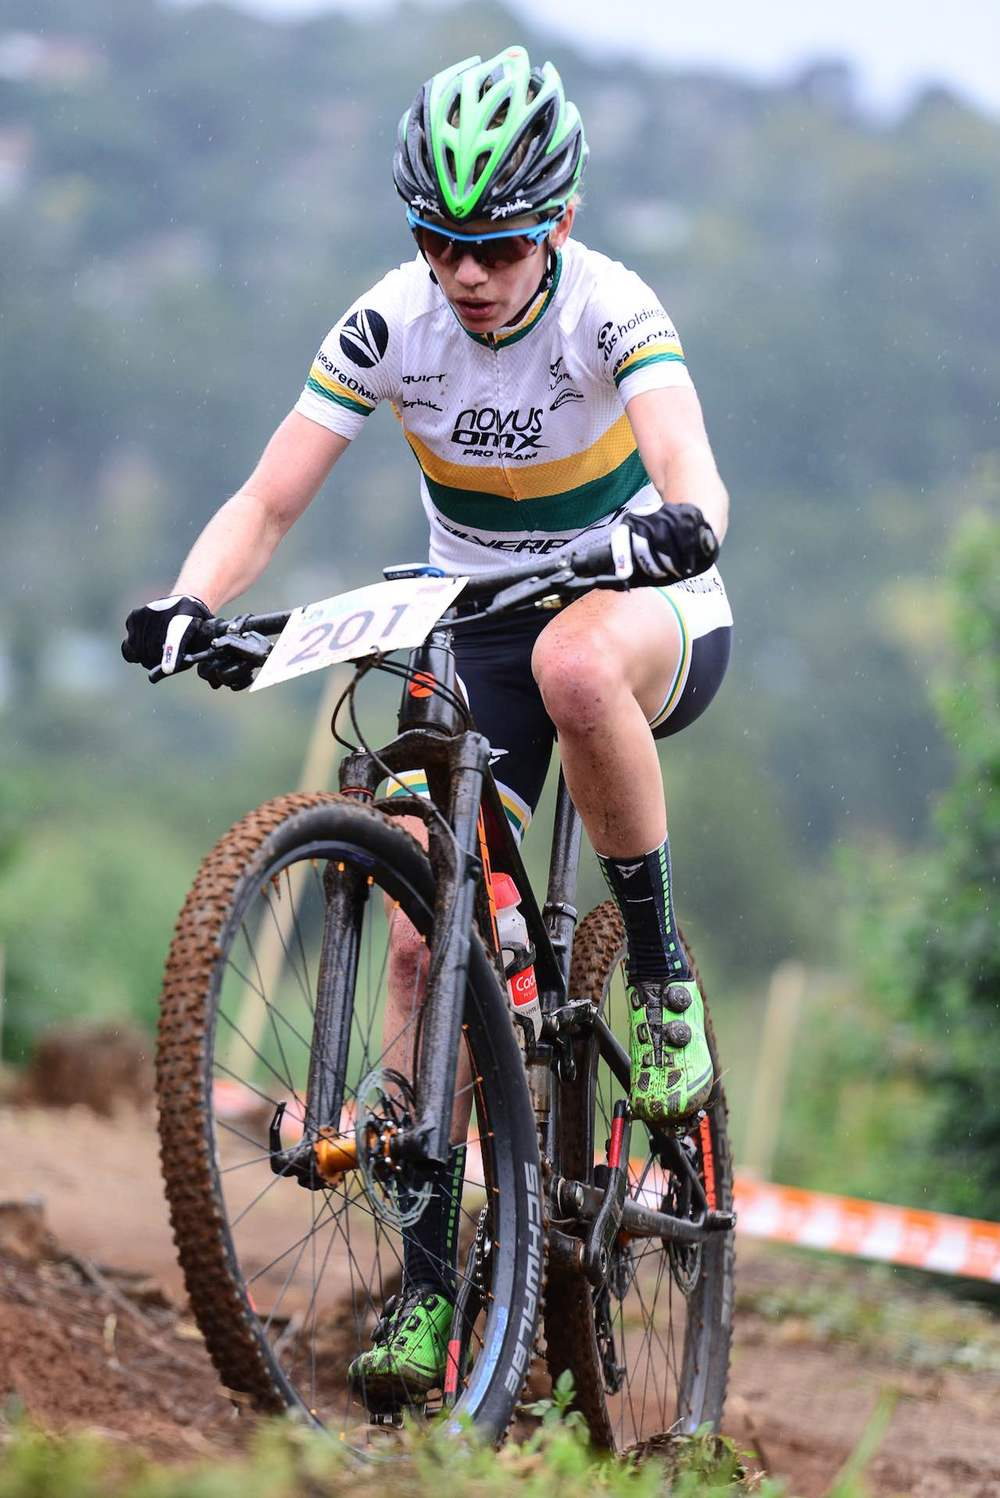 Although Novus OMX Pro MTB Team's Cherie Redecker is the current Elite Women's Log Leader, the overall title will only be decided at the fifth and final round of the Stihl 2016 SA XCO Cup Series, which takes place at Happy Valley Conservancy in Bloemfontein on Saturday 18 June. Photo credit: Darren Goddard